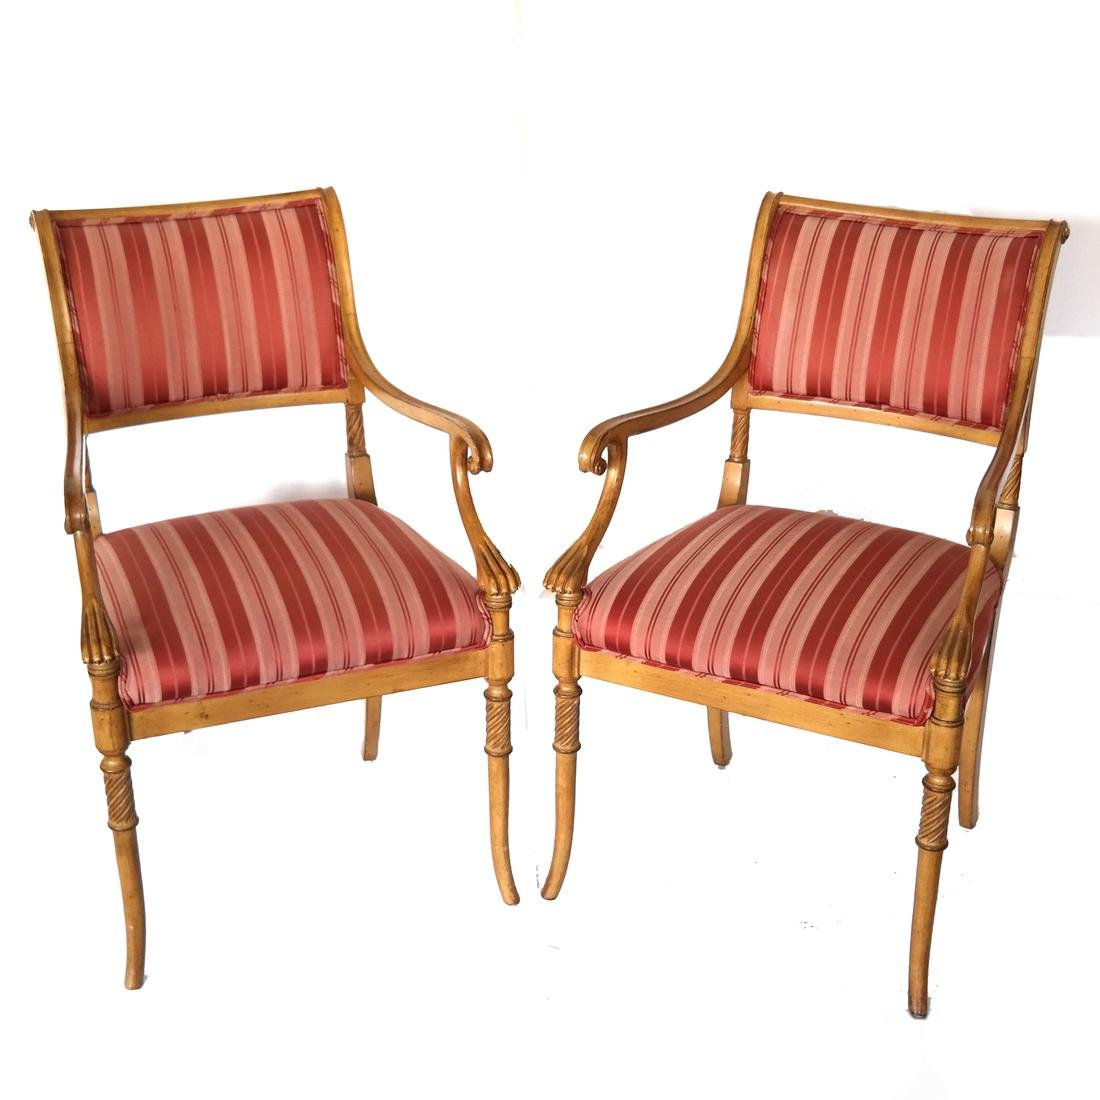 Set of Eight Regency-Style Dining Chairs - 6